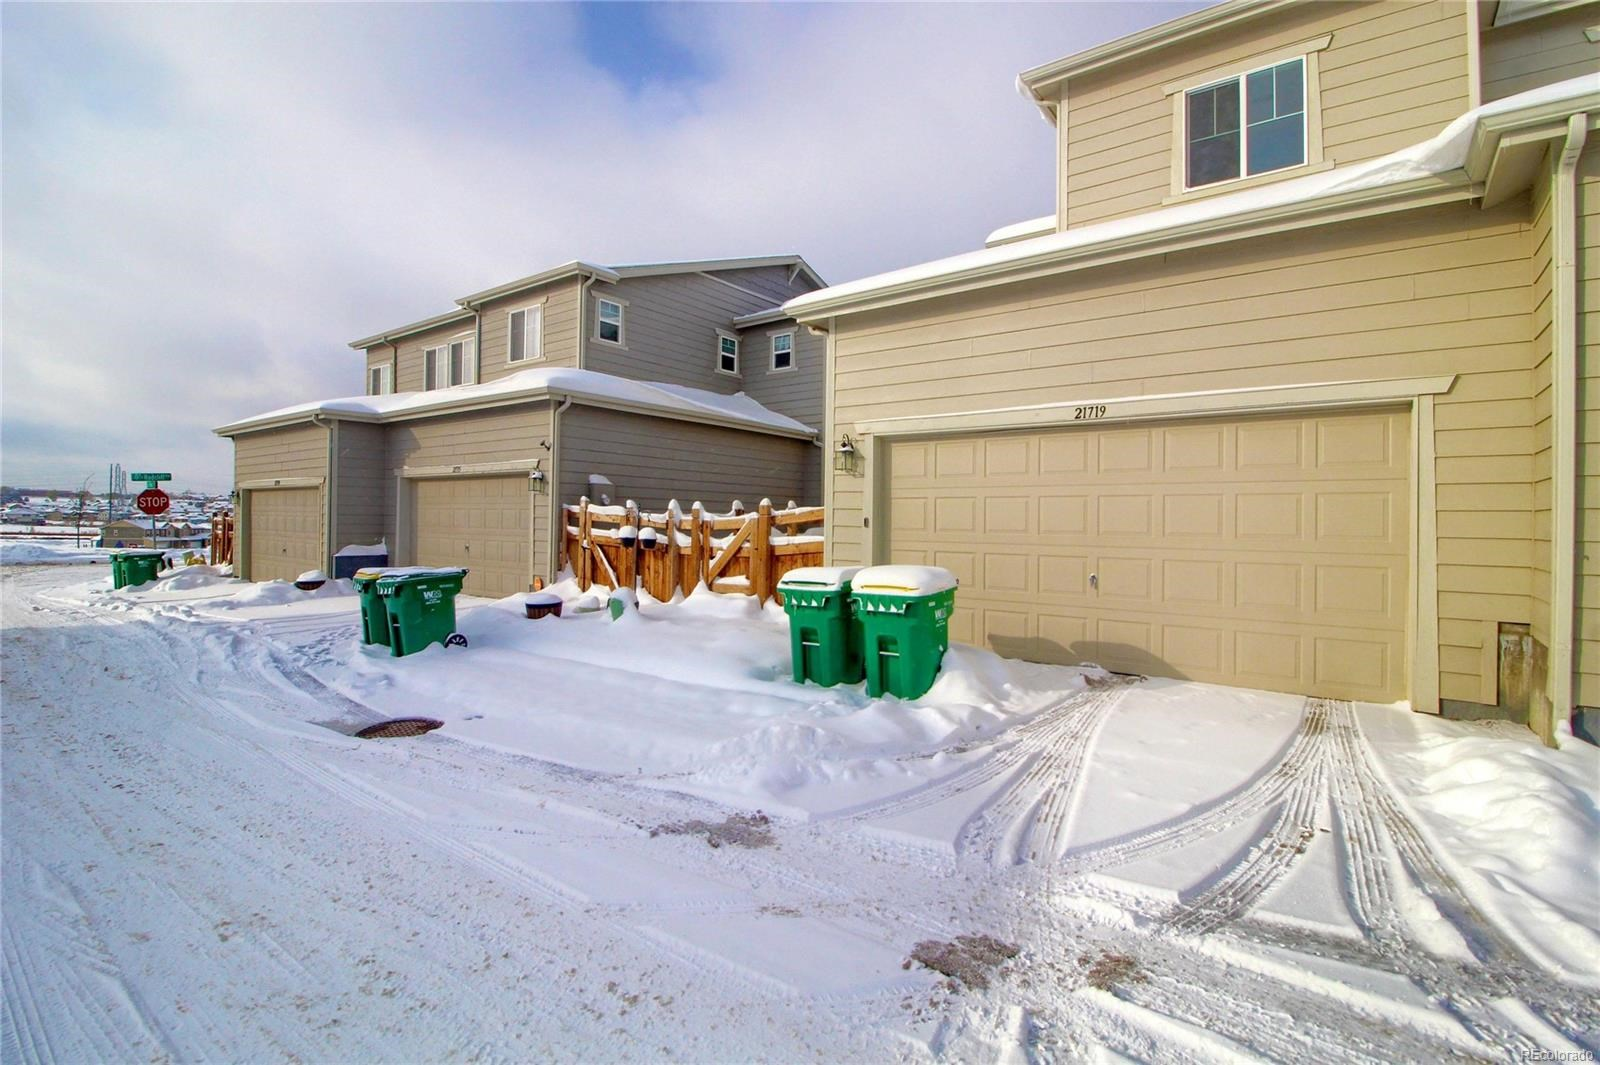 MLS# 4512739 - 27 - 21719 E Quincy Circle, Aurora, CO 80015